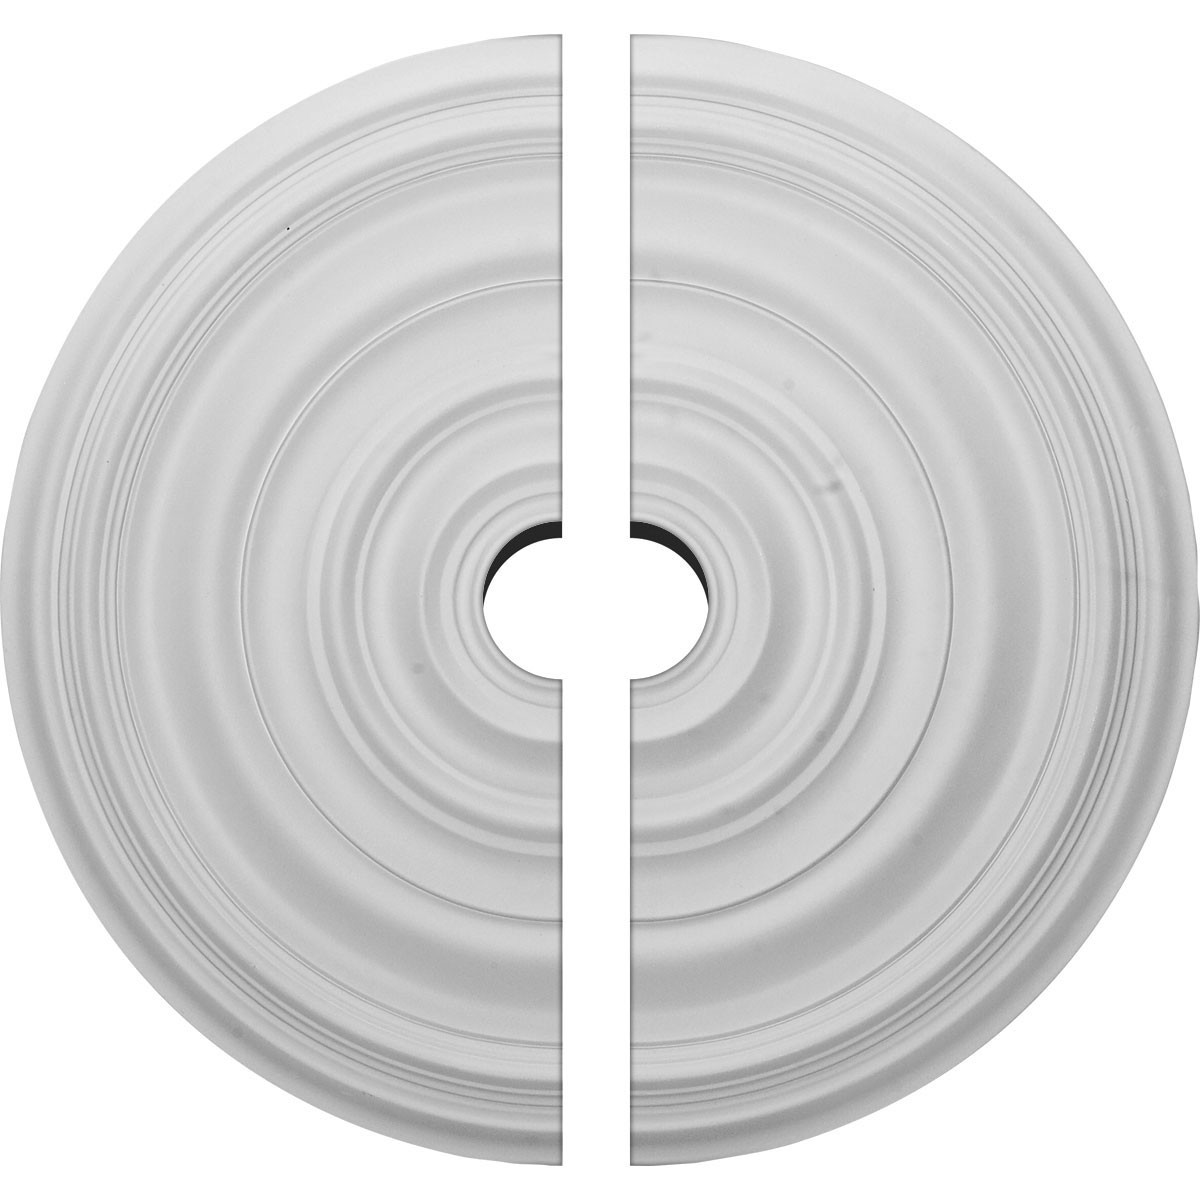 """EM-CM29CA2-04000 - 29 1/8""""OD x 4""""ID x 1 1/2""""P Carton Smooth Ceiling Medallion, Two Piece (Fits Canopies up to 9 1/8"""")"""